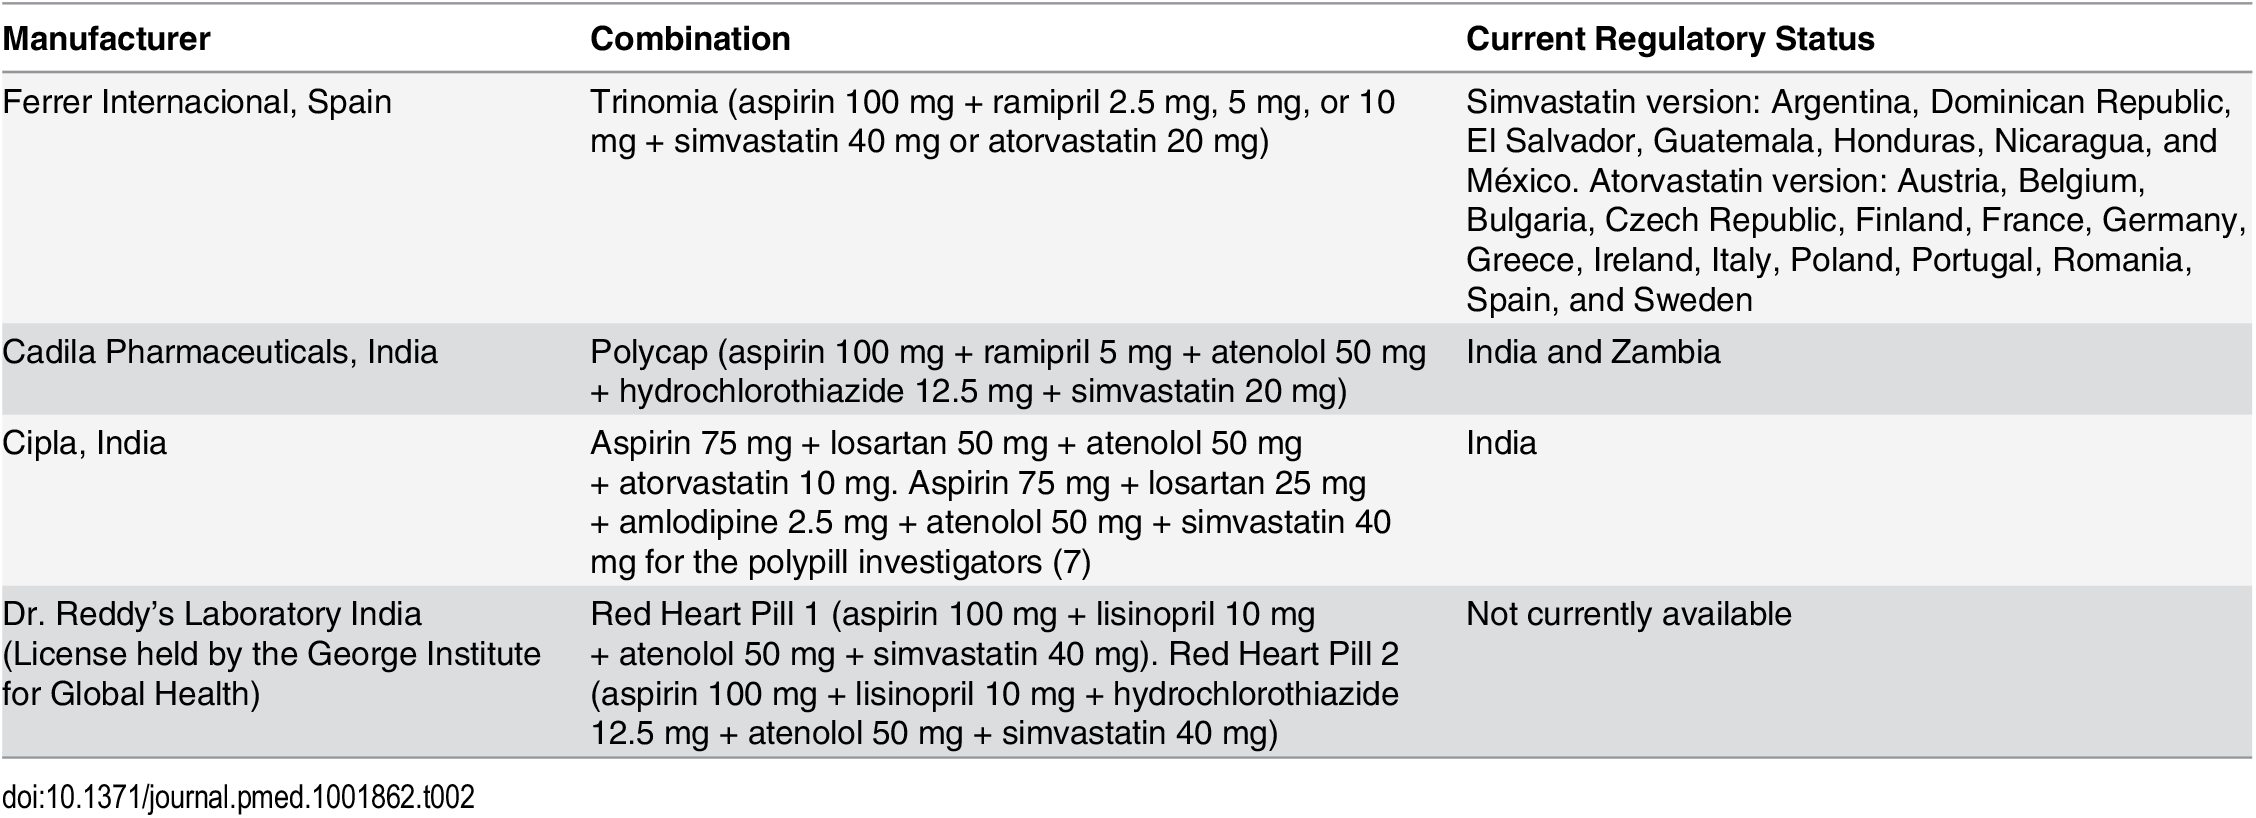 """Manufacturers and regulatory status of fixed-dose combinations for cardiovascular disease prevention [<em class=""""ref"""">10</em>]."""